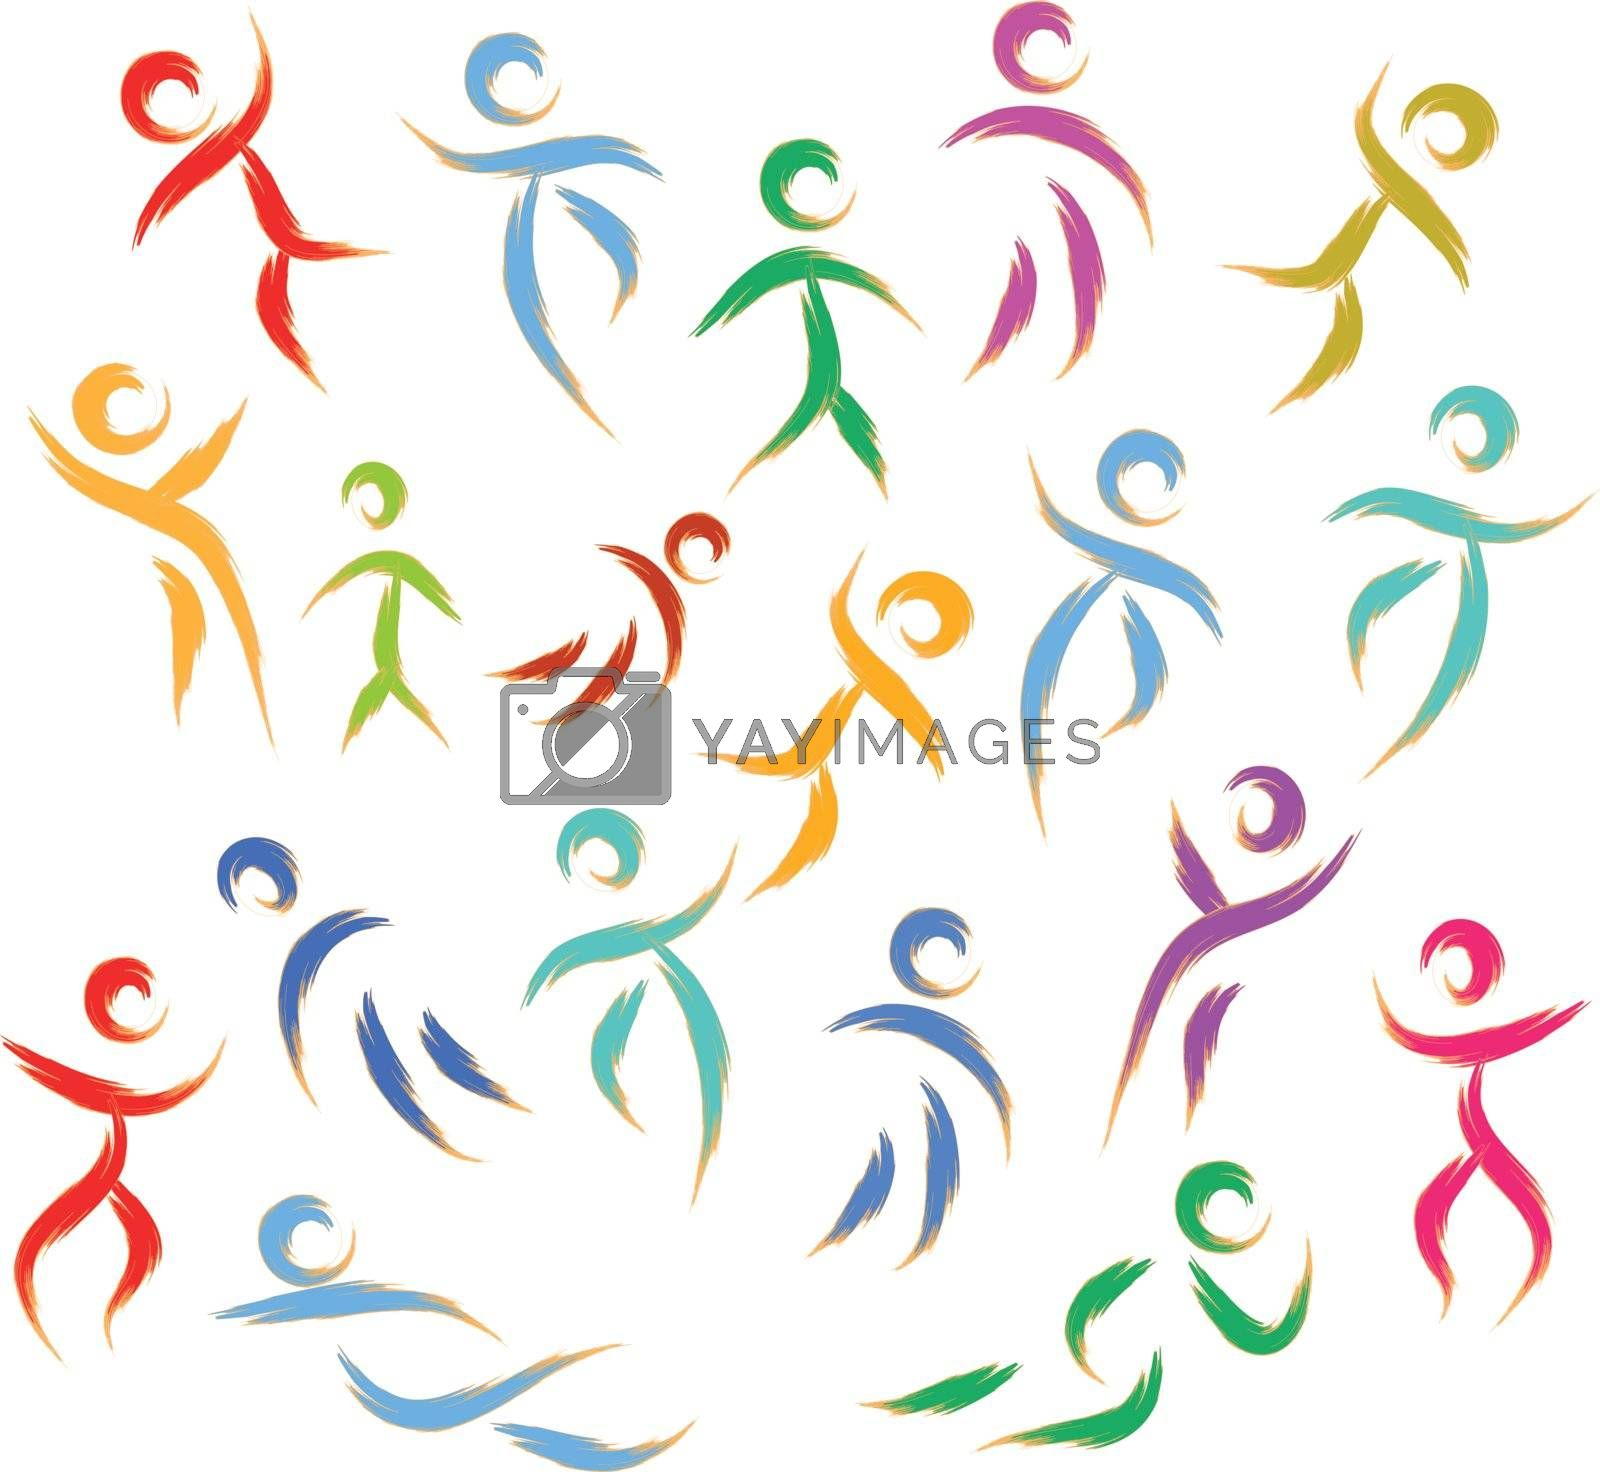 vector stylized people texture abstract illustration